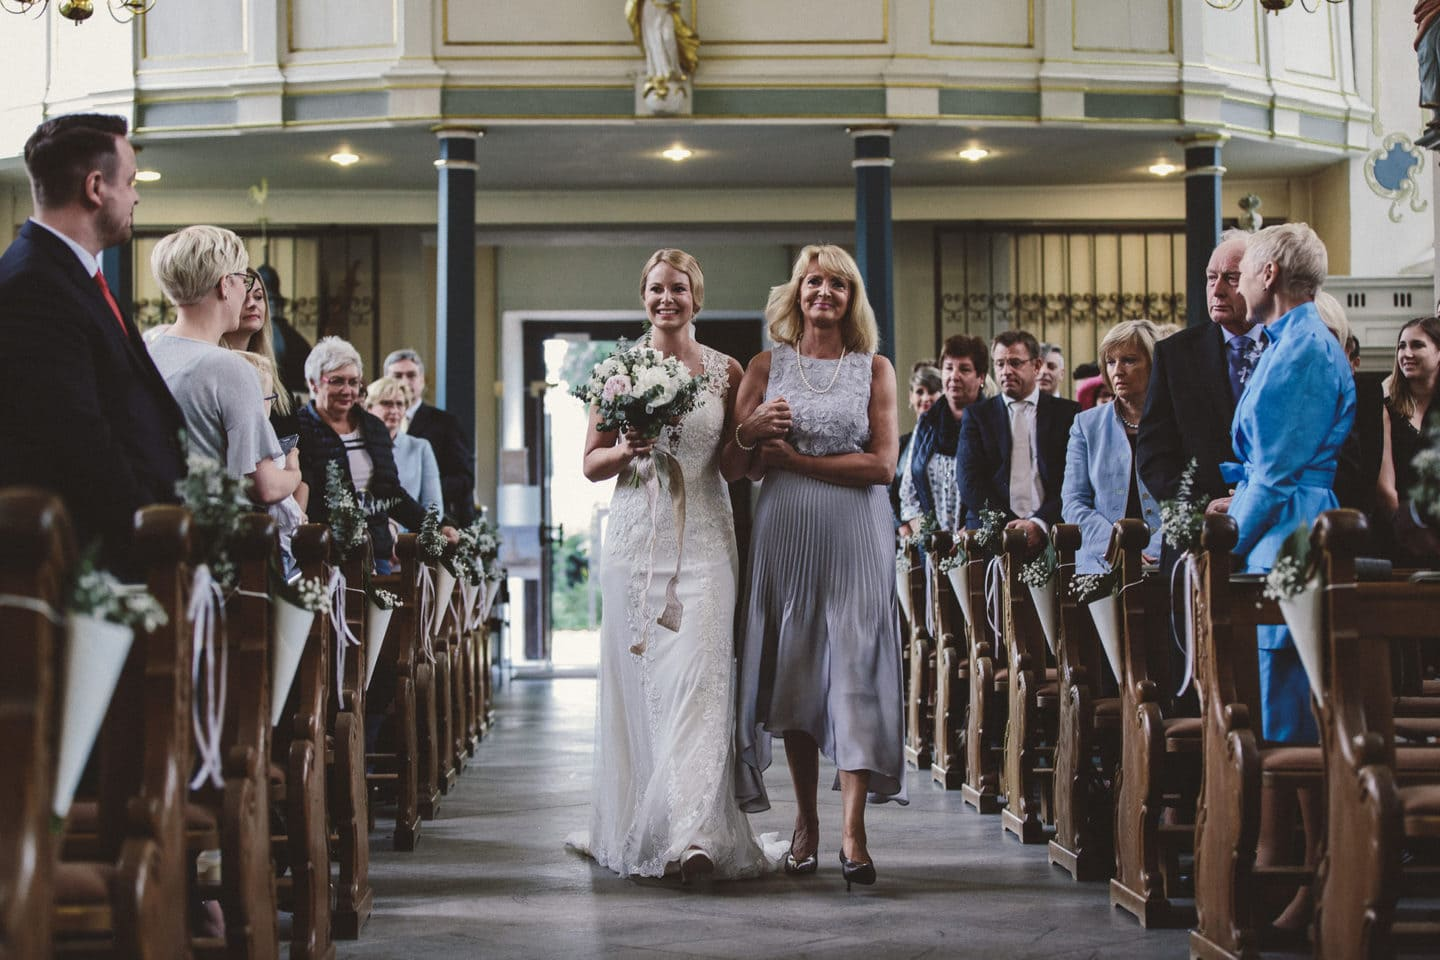 When your mother walks you down the aisle - Hochzeitsfotograf Hamburg